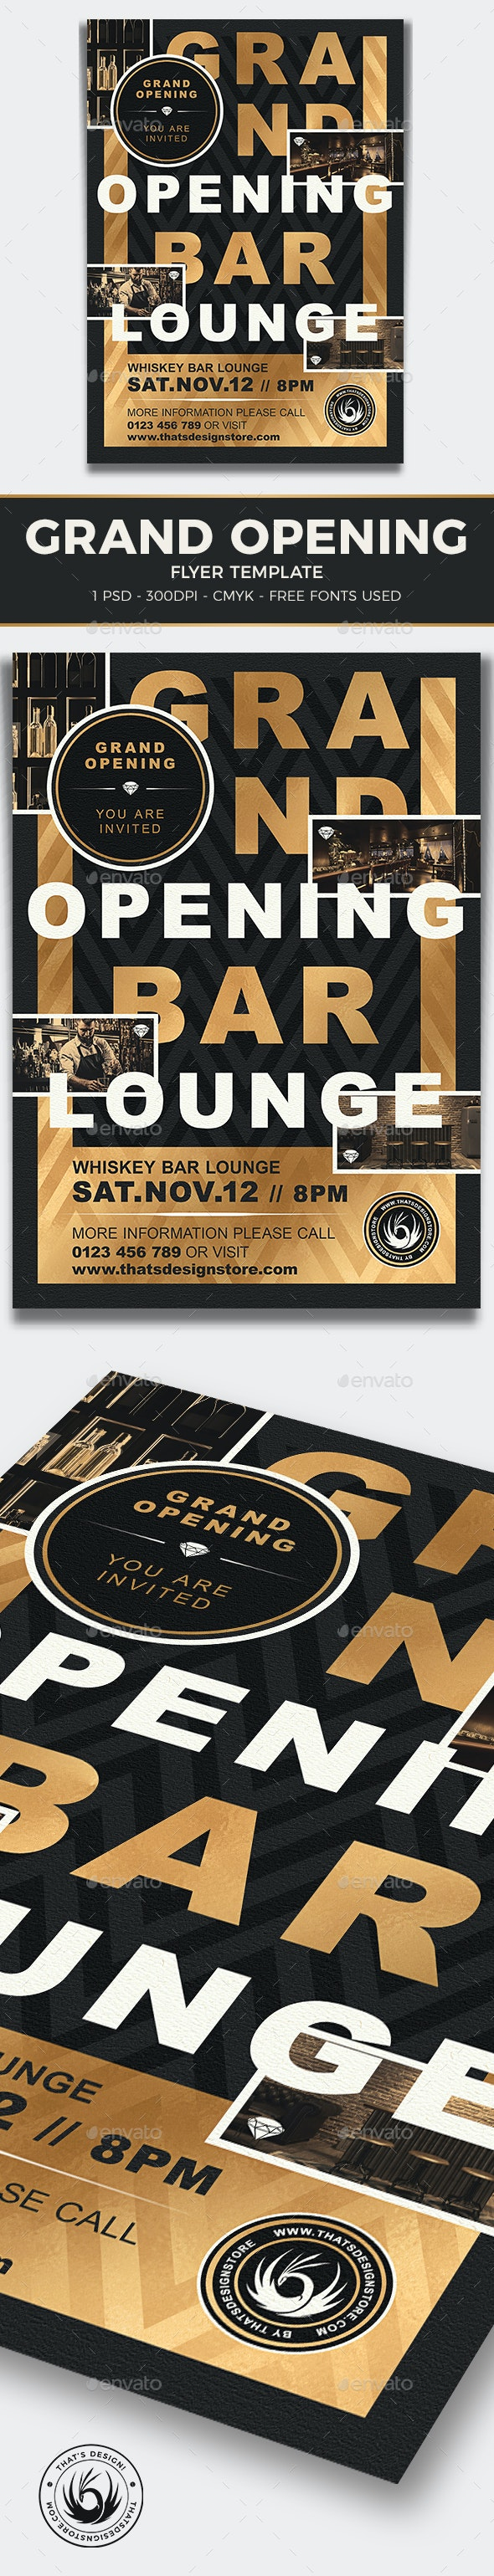 Grand Opening Flyer Template V4 - Clubs & Parties Events